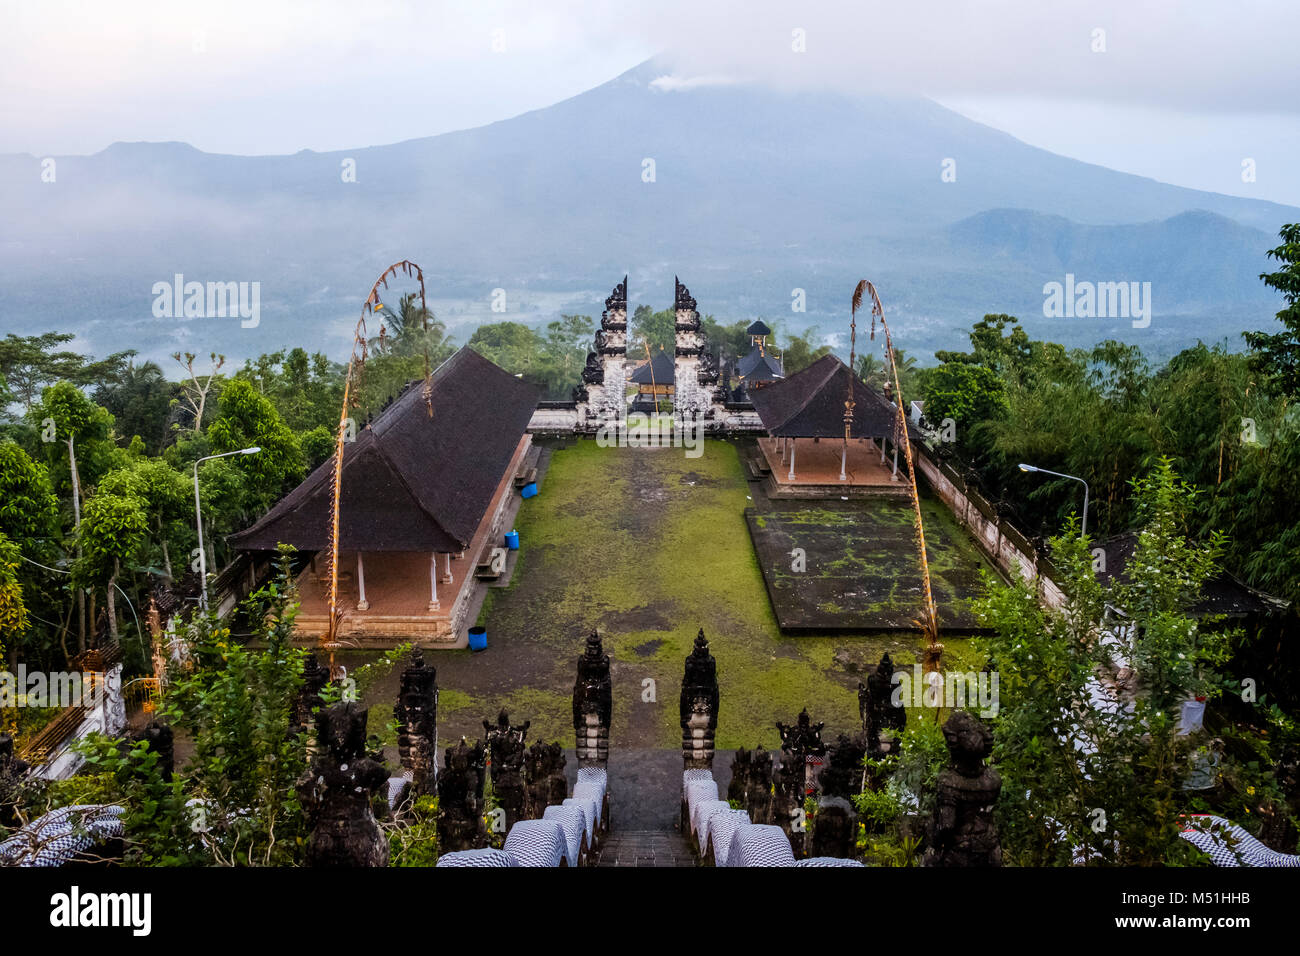 Balinese split gateway ('candi bentar') and outer sanctum, with Mt. Agung in the distance, Pura Lempuyang - Stock Image